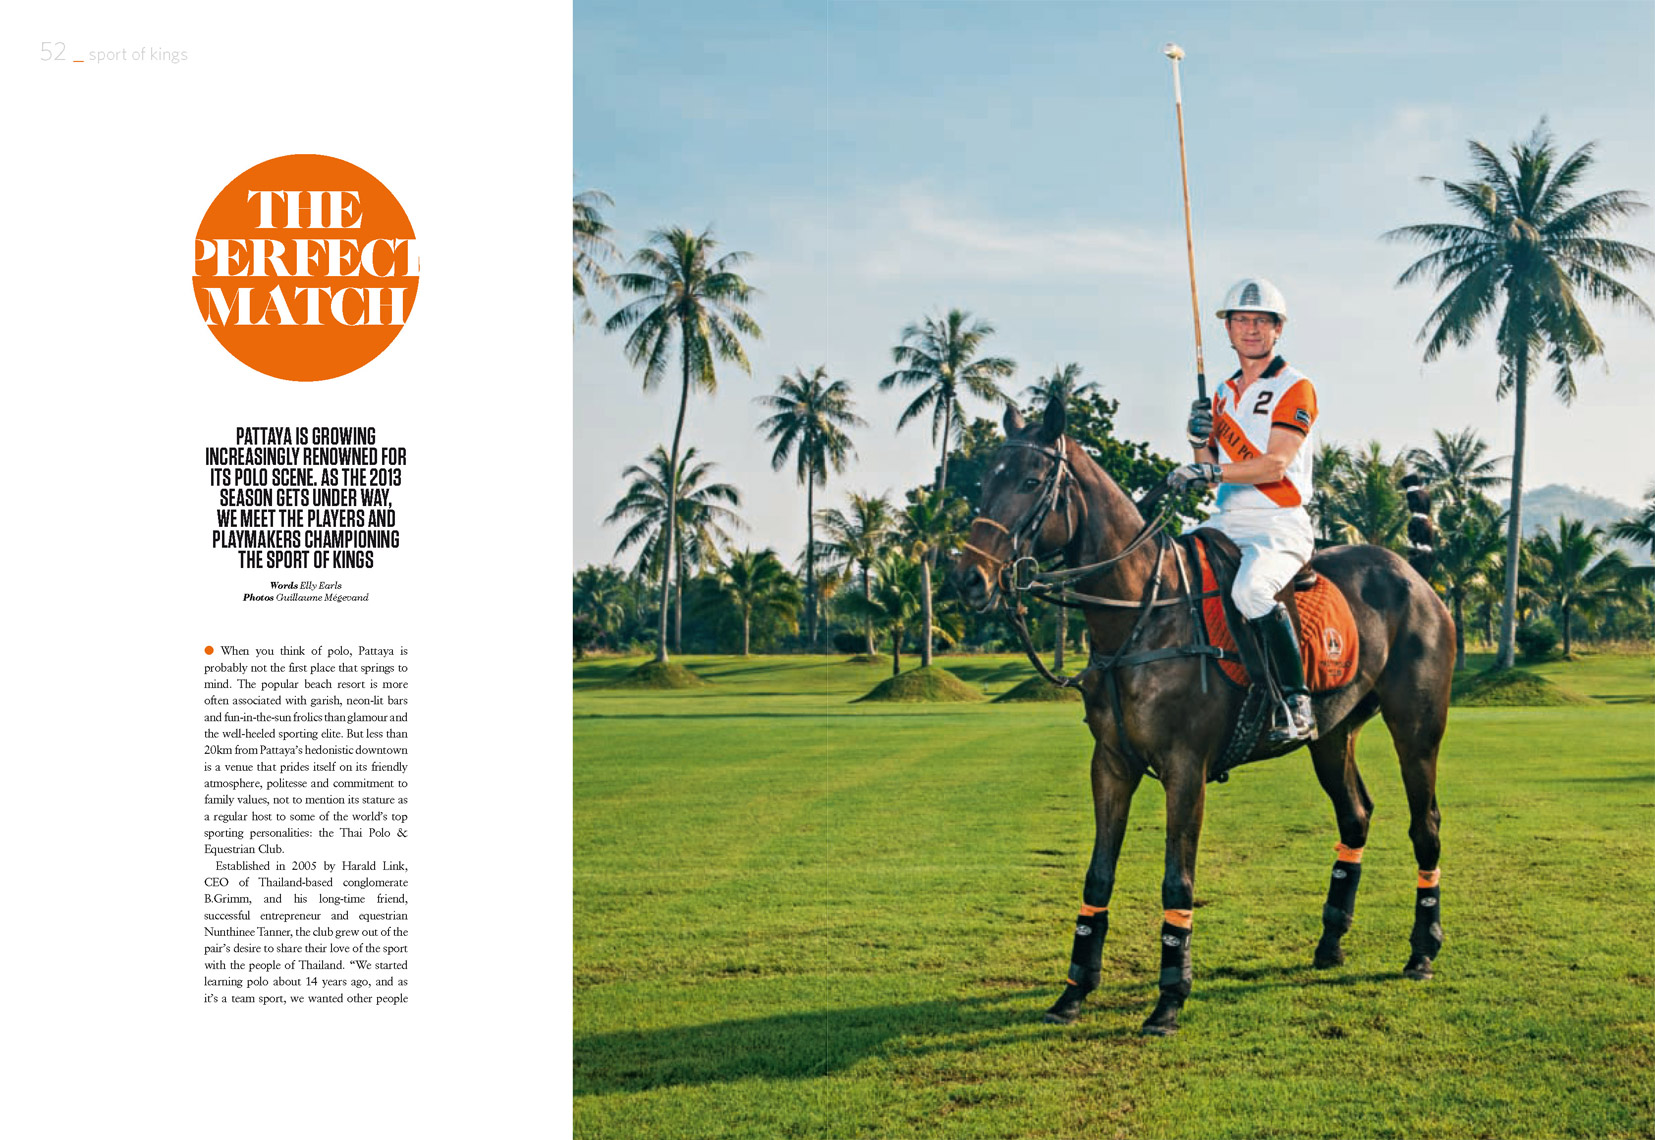 Polo in Thailand - Harald Link